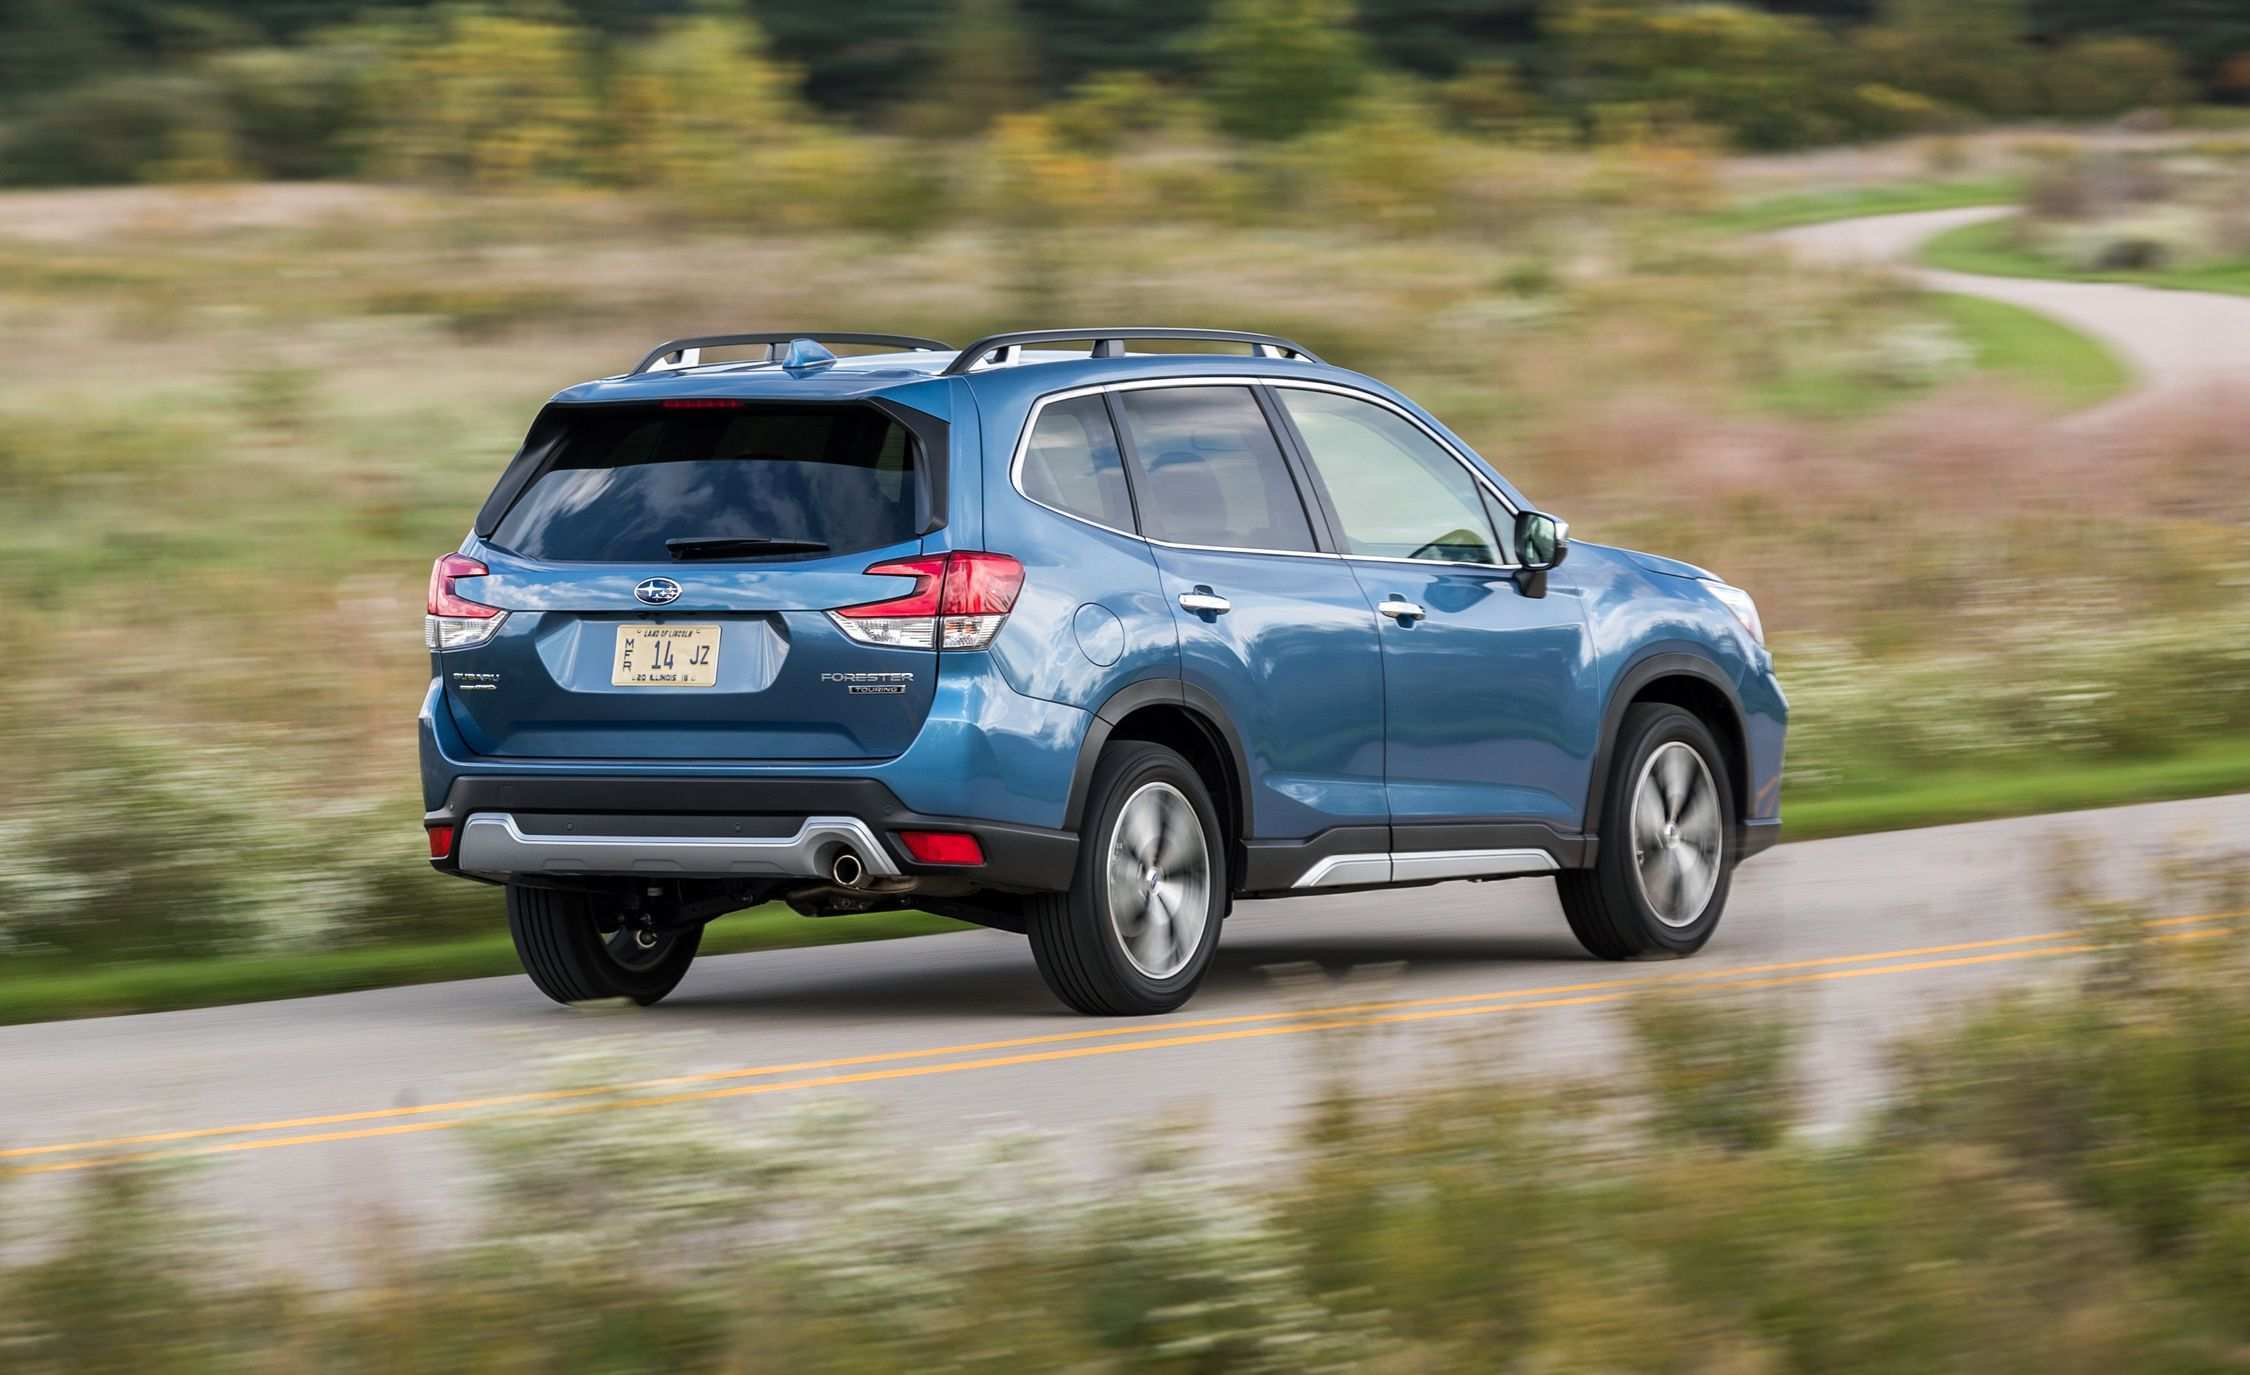 96 All New The 2019 Subaru Forester Sport Concept New Concept with The 2019 Subaru Forester Sport Concept